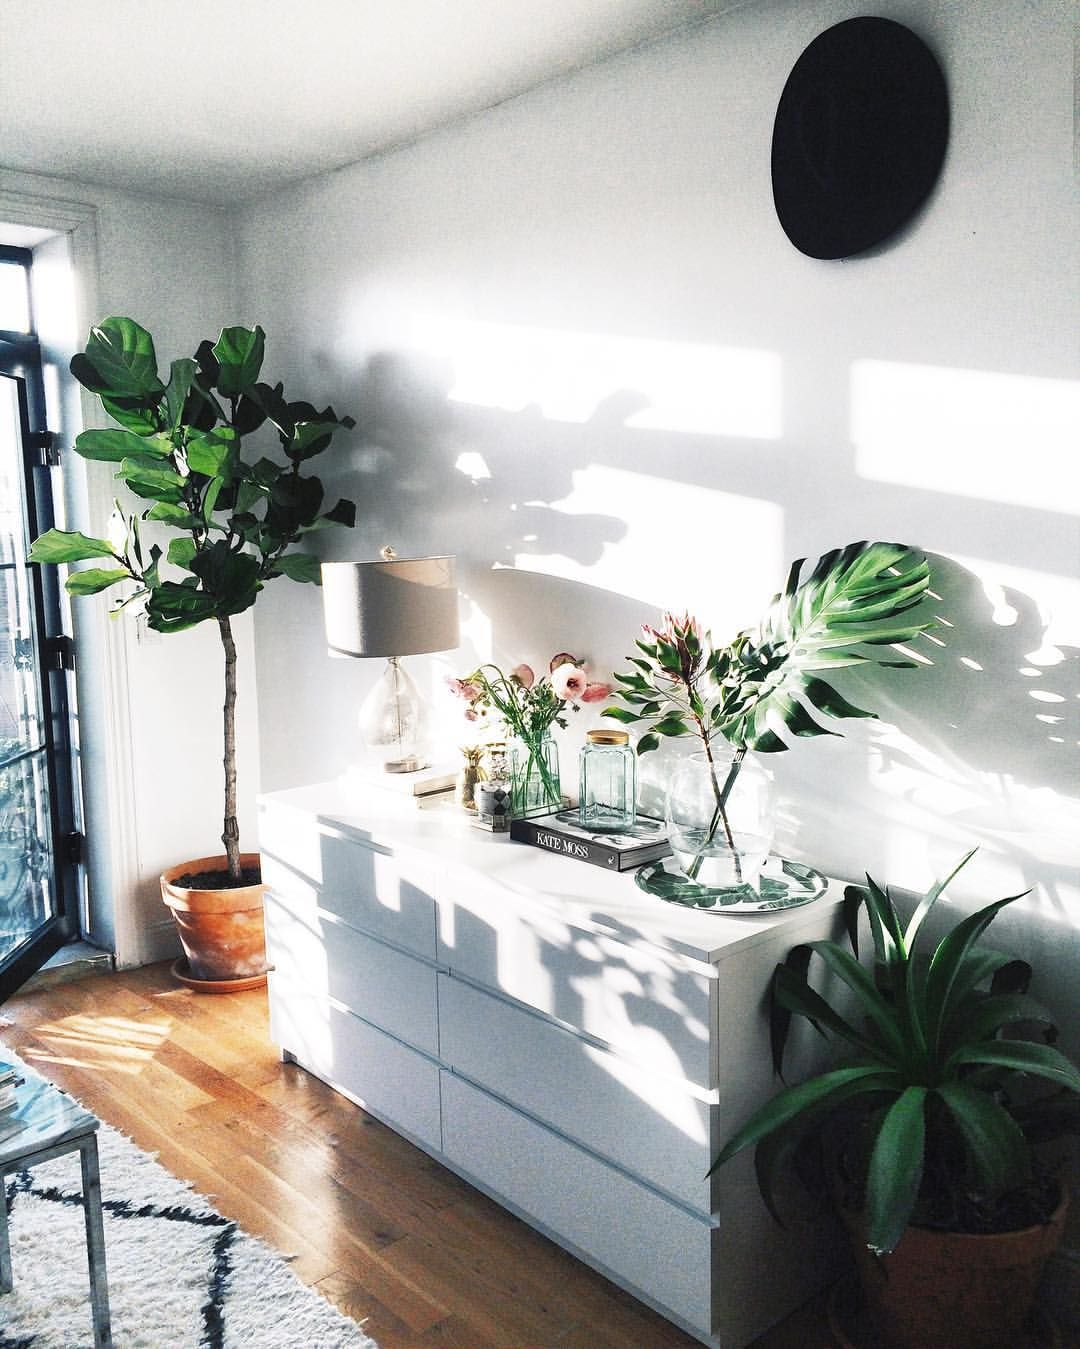 Viktoria Dahlberg Sur Instagram Weekend Home Interior Deco Plants